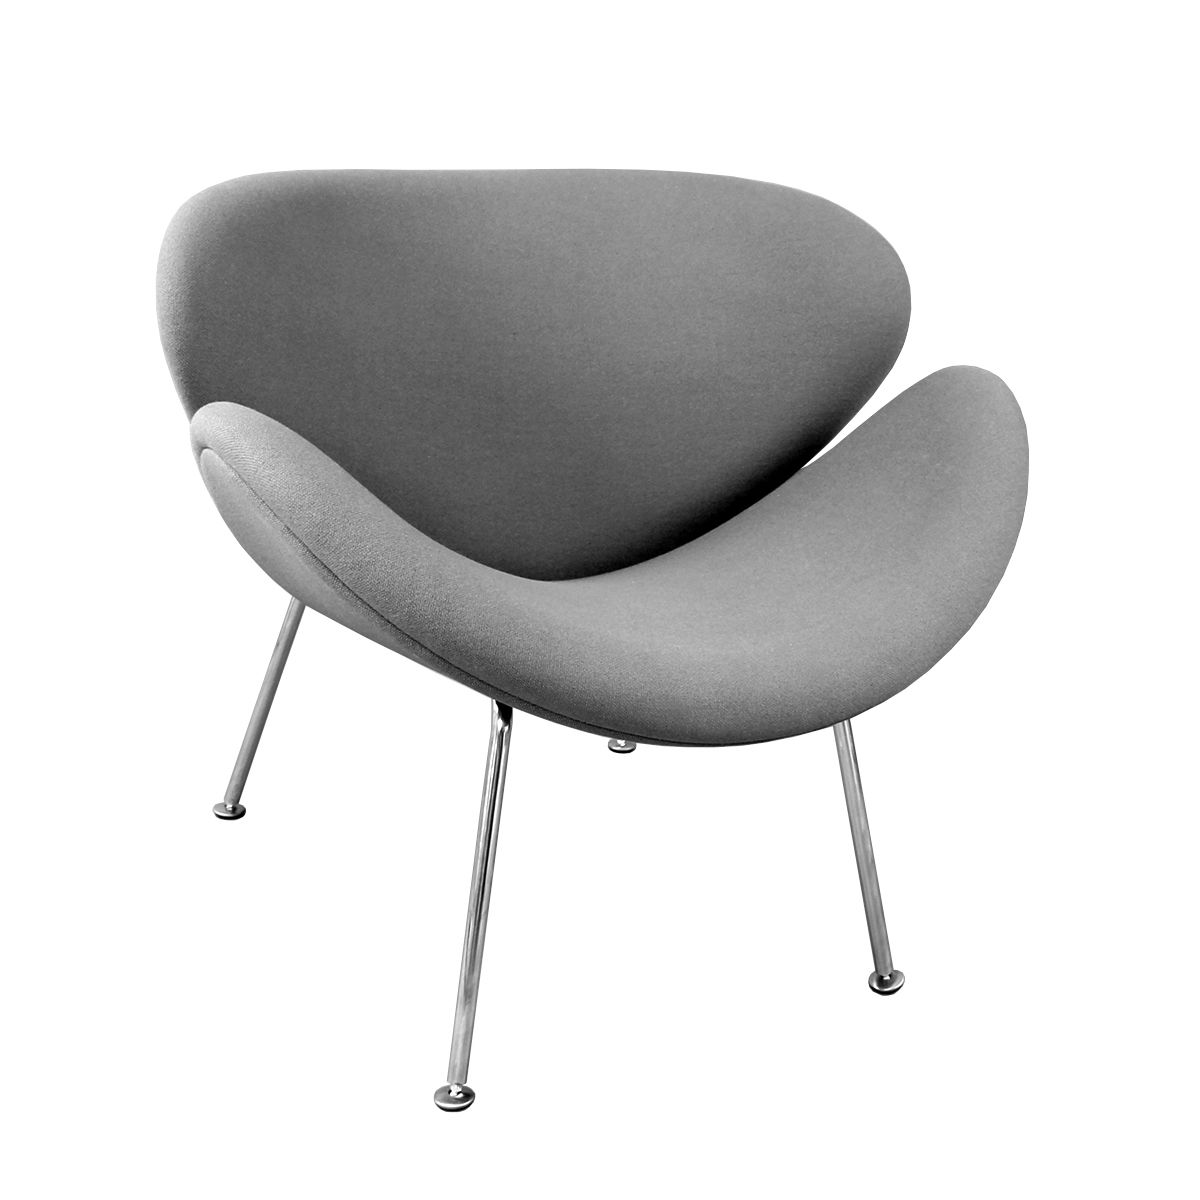 Dove Grey Smile Chair Inspired By Eames Perfect For The Living Room